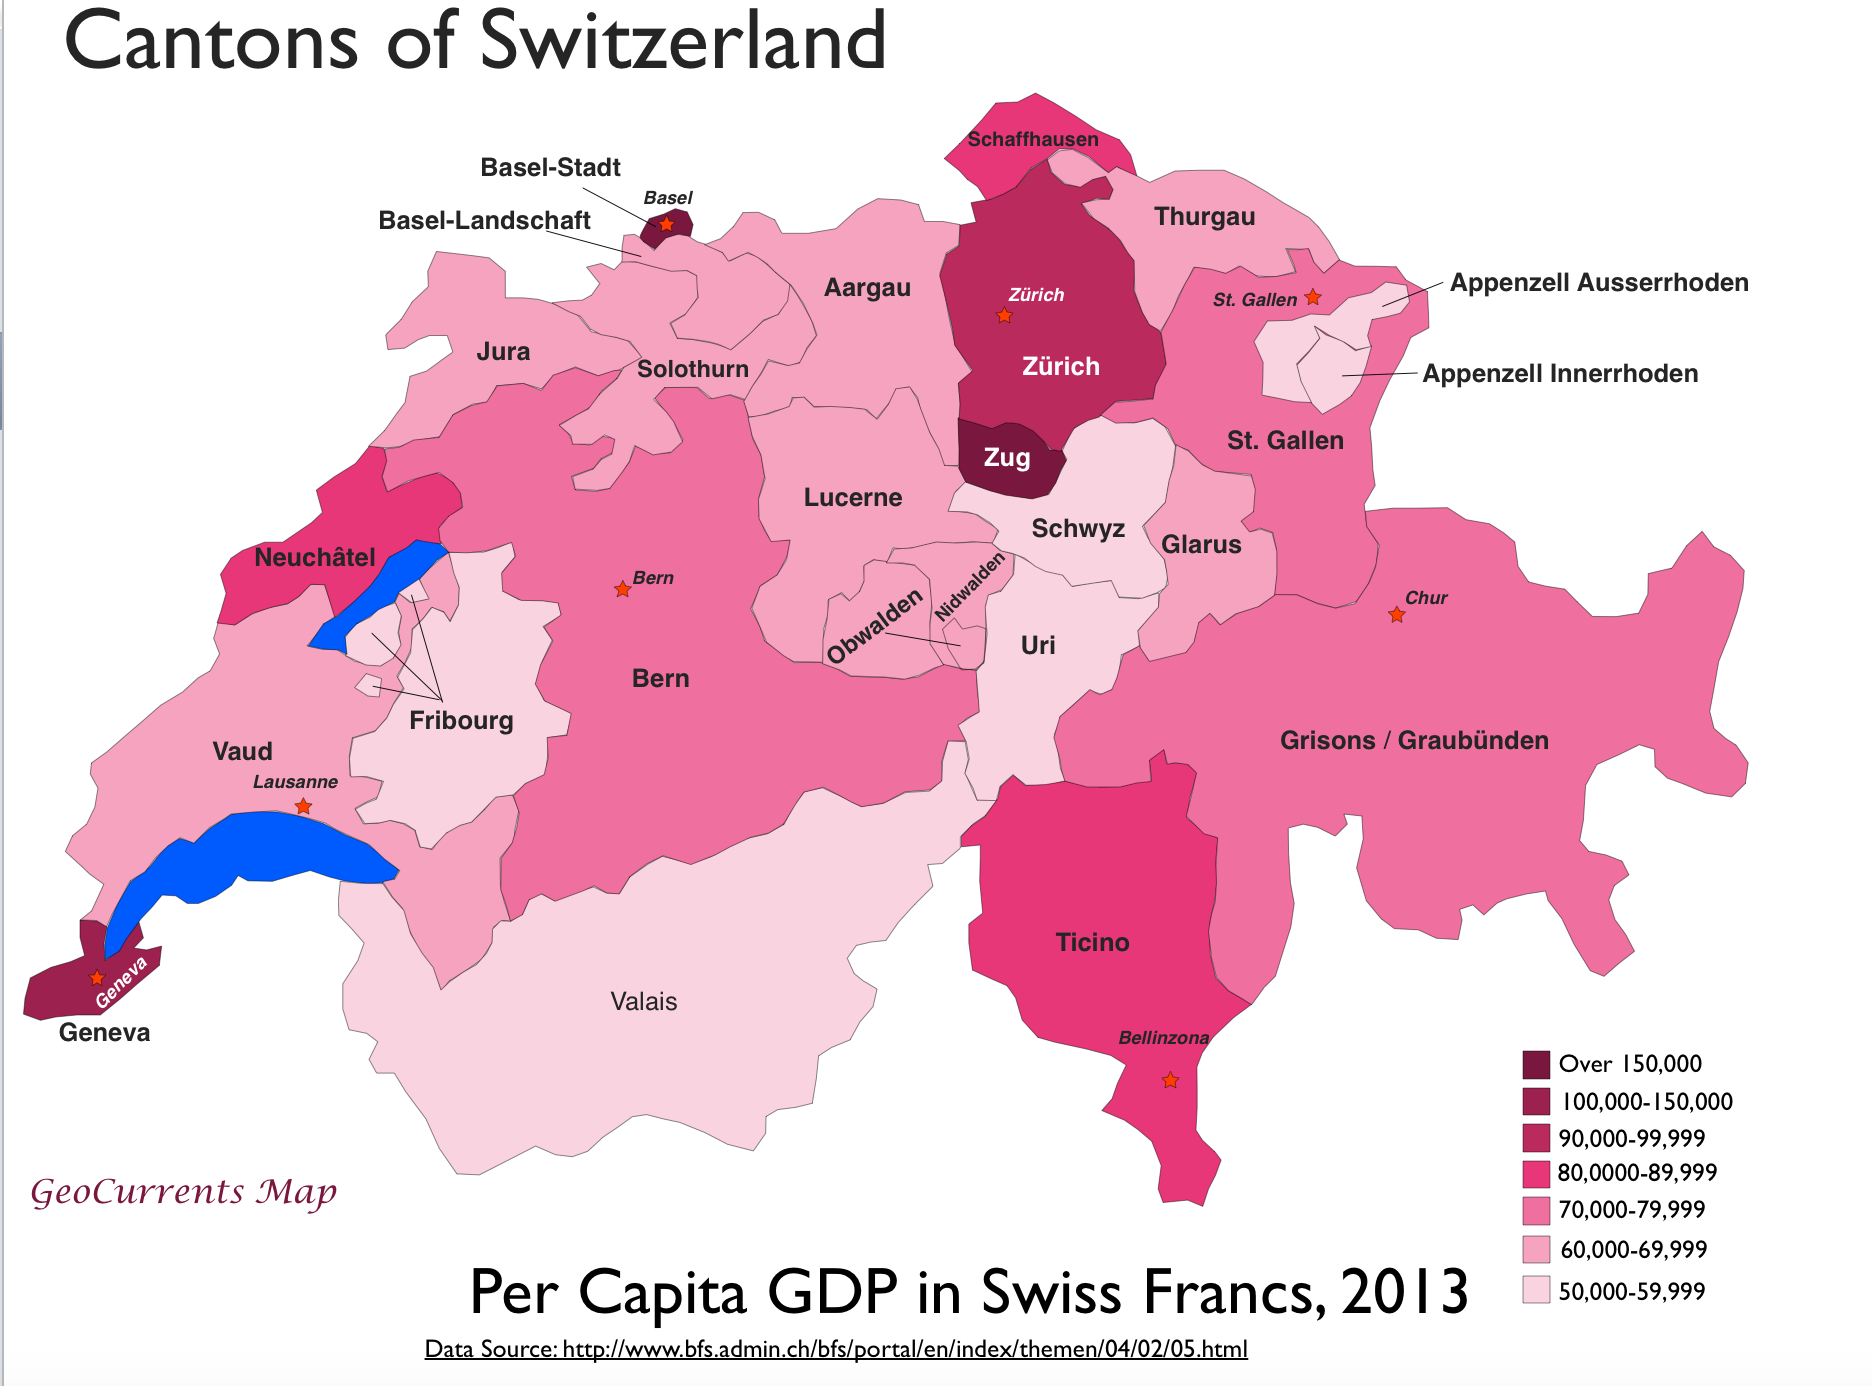 Swiss Per Capita GDP by Canton MAPS Pinterest